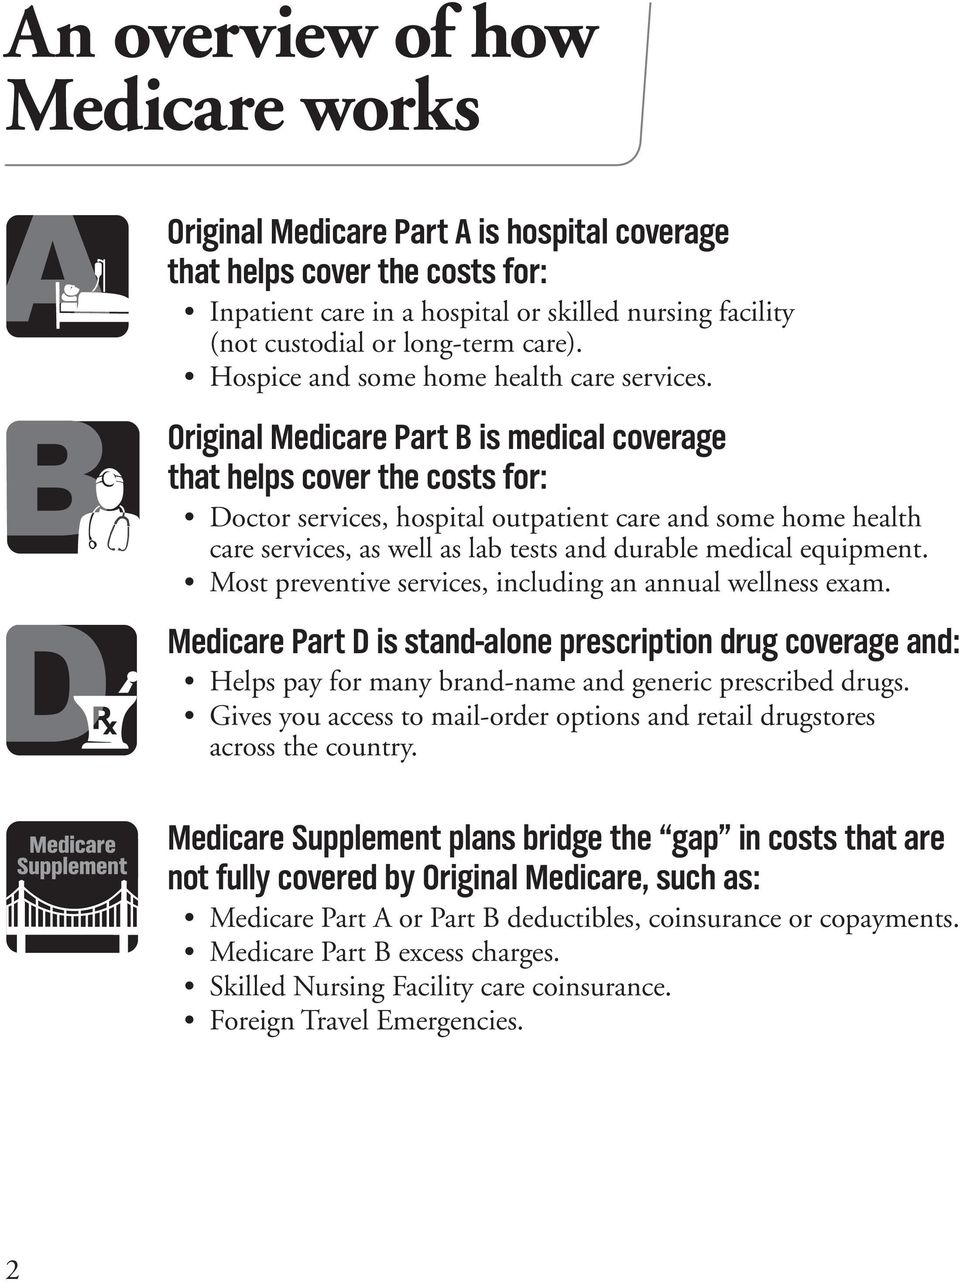 Original Medicare Part B is medical coverage that helps cover the costs for: Doctor services, hospital outpatient care and some home health care services, as well as lab tests and durable medical